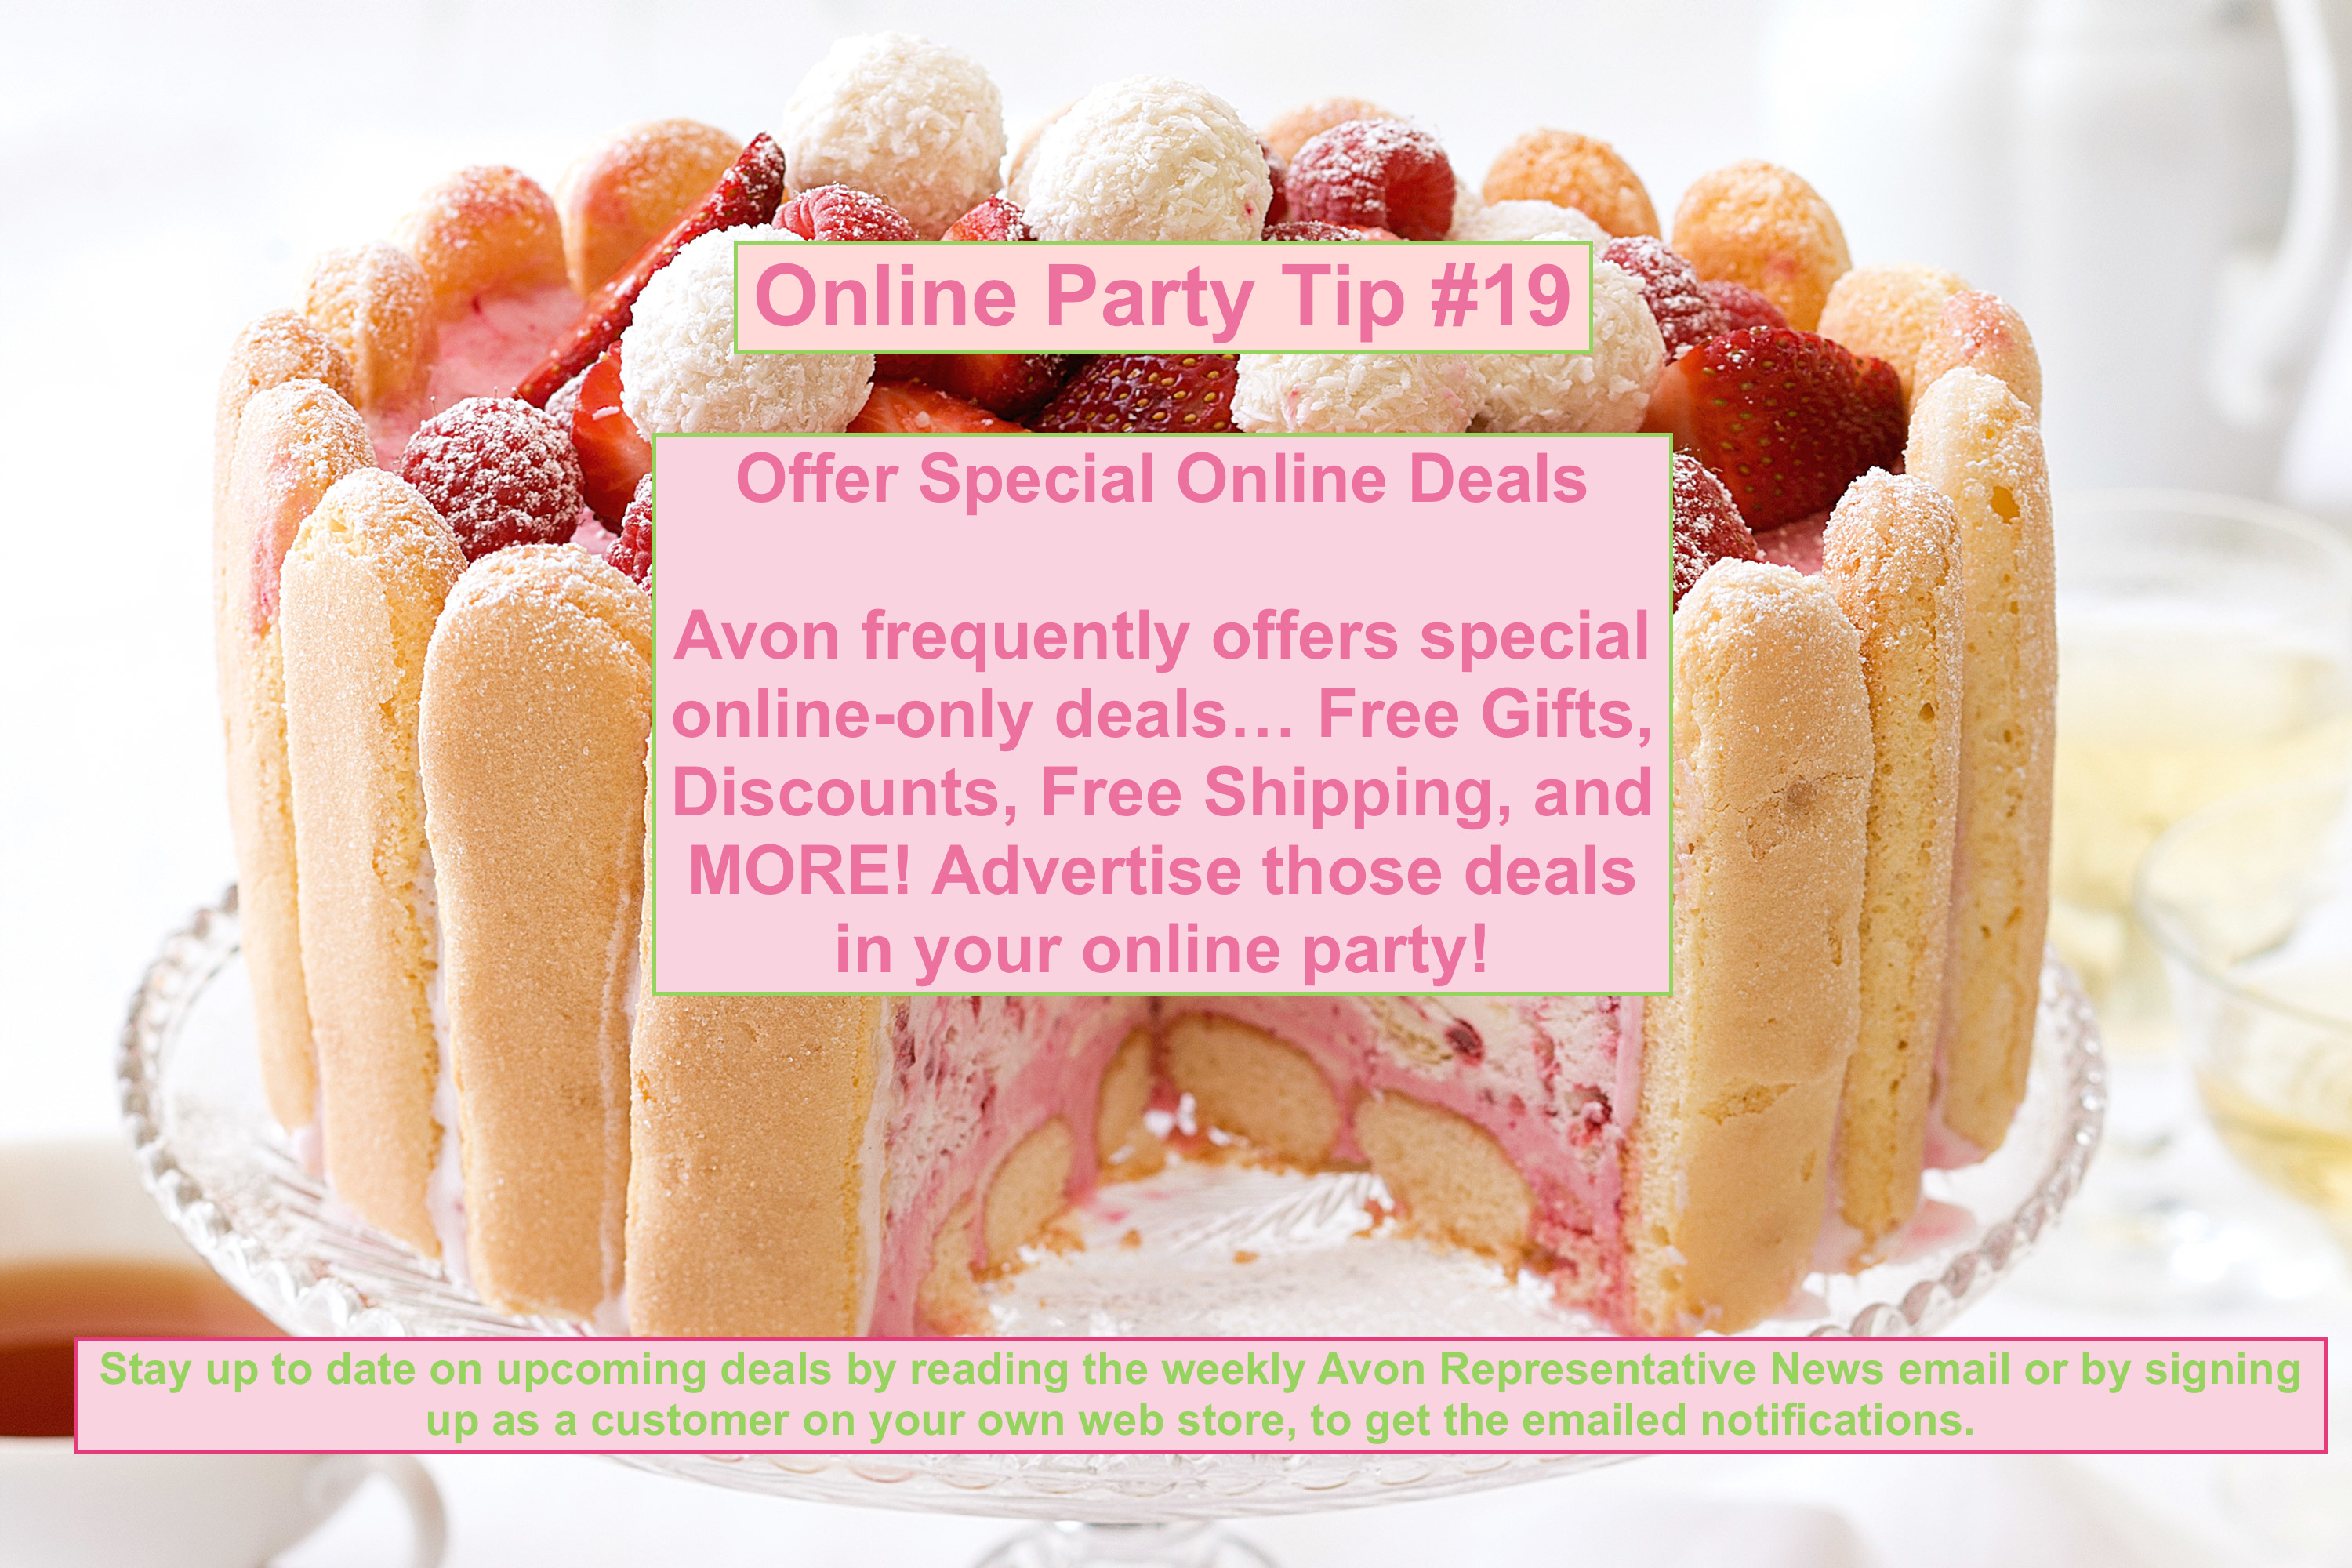 Tips for Hosting an Online Avon Party